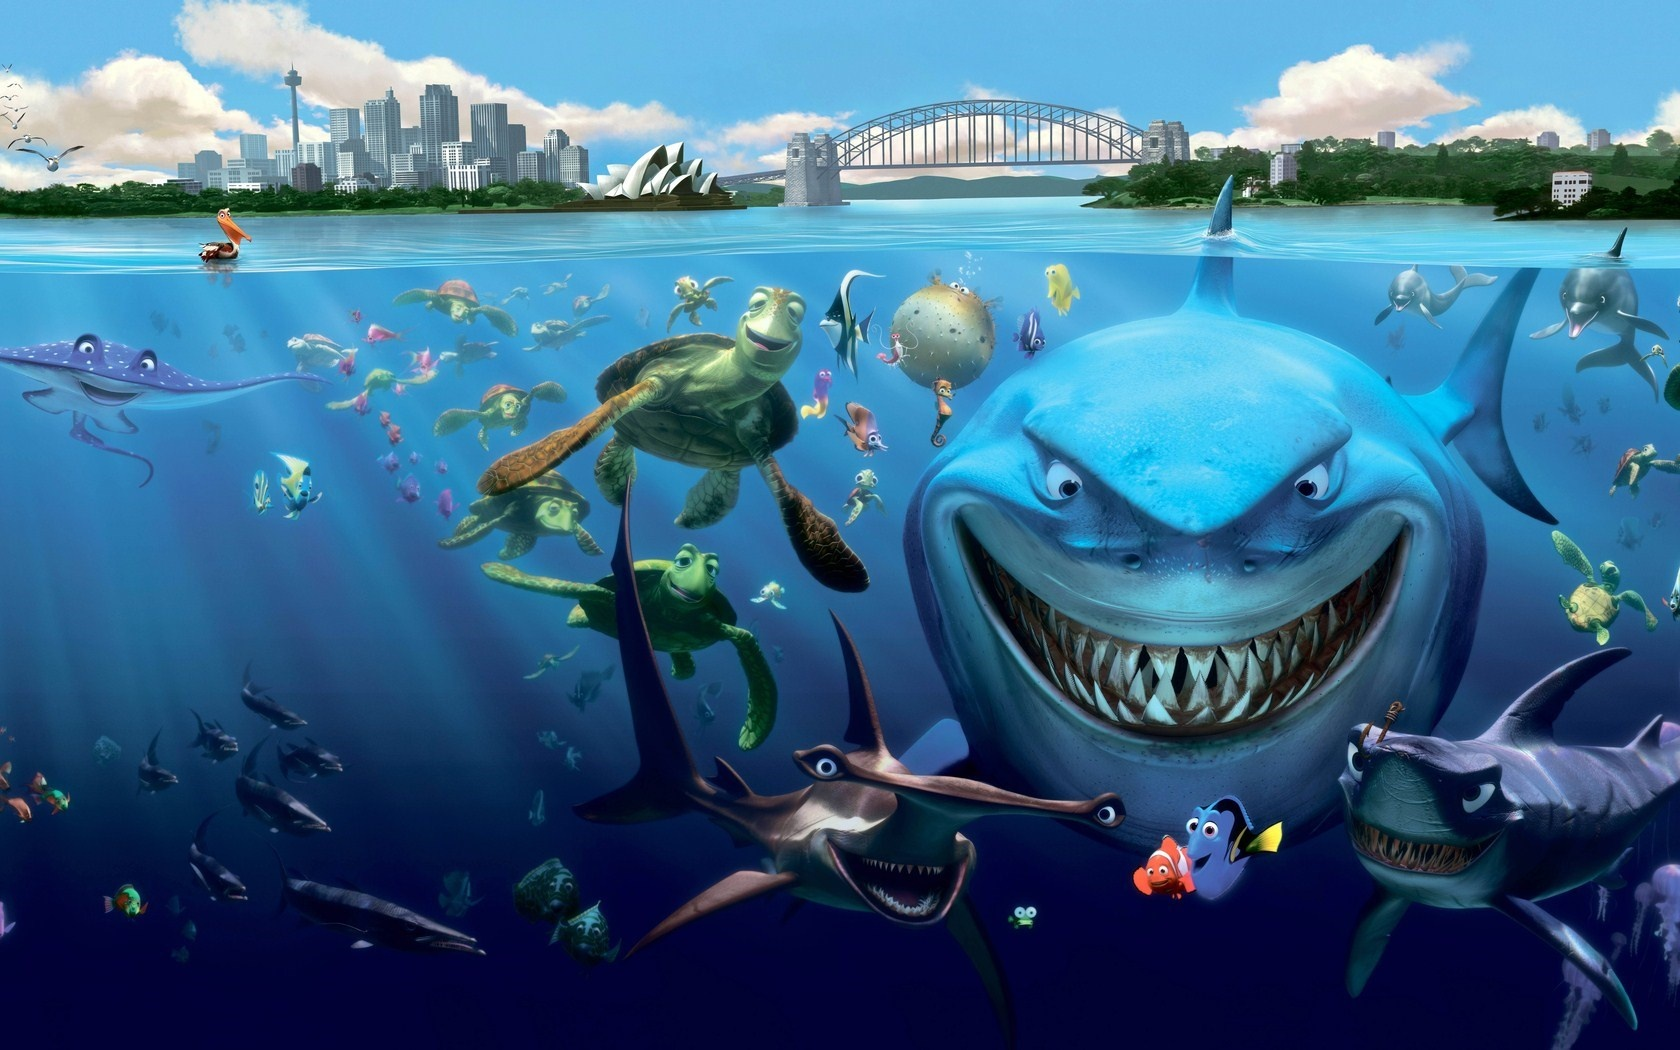 Finding Nemo Underwater Fish Sharks Turtles Cartoon